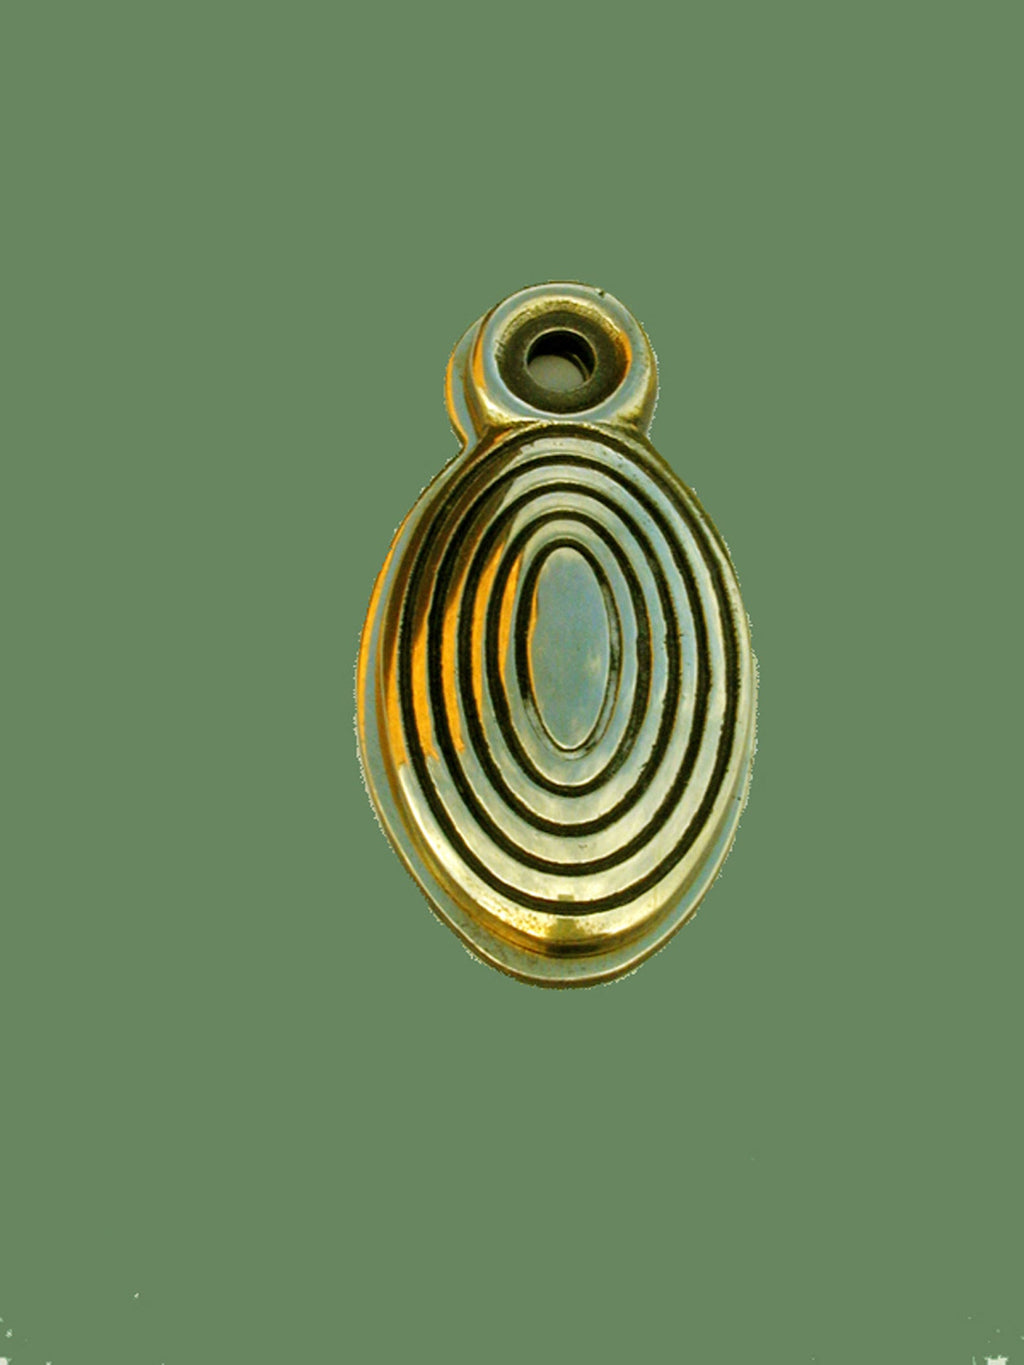 Antique Brass Beehive Escutcheon